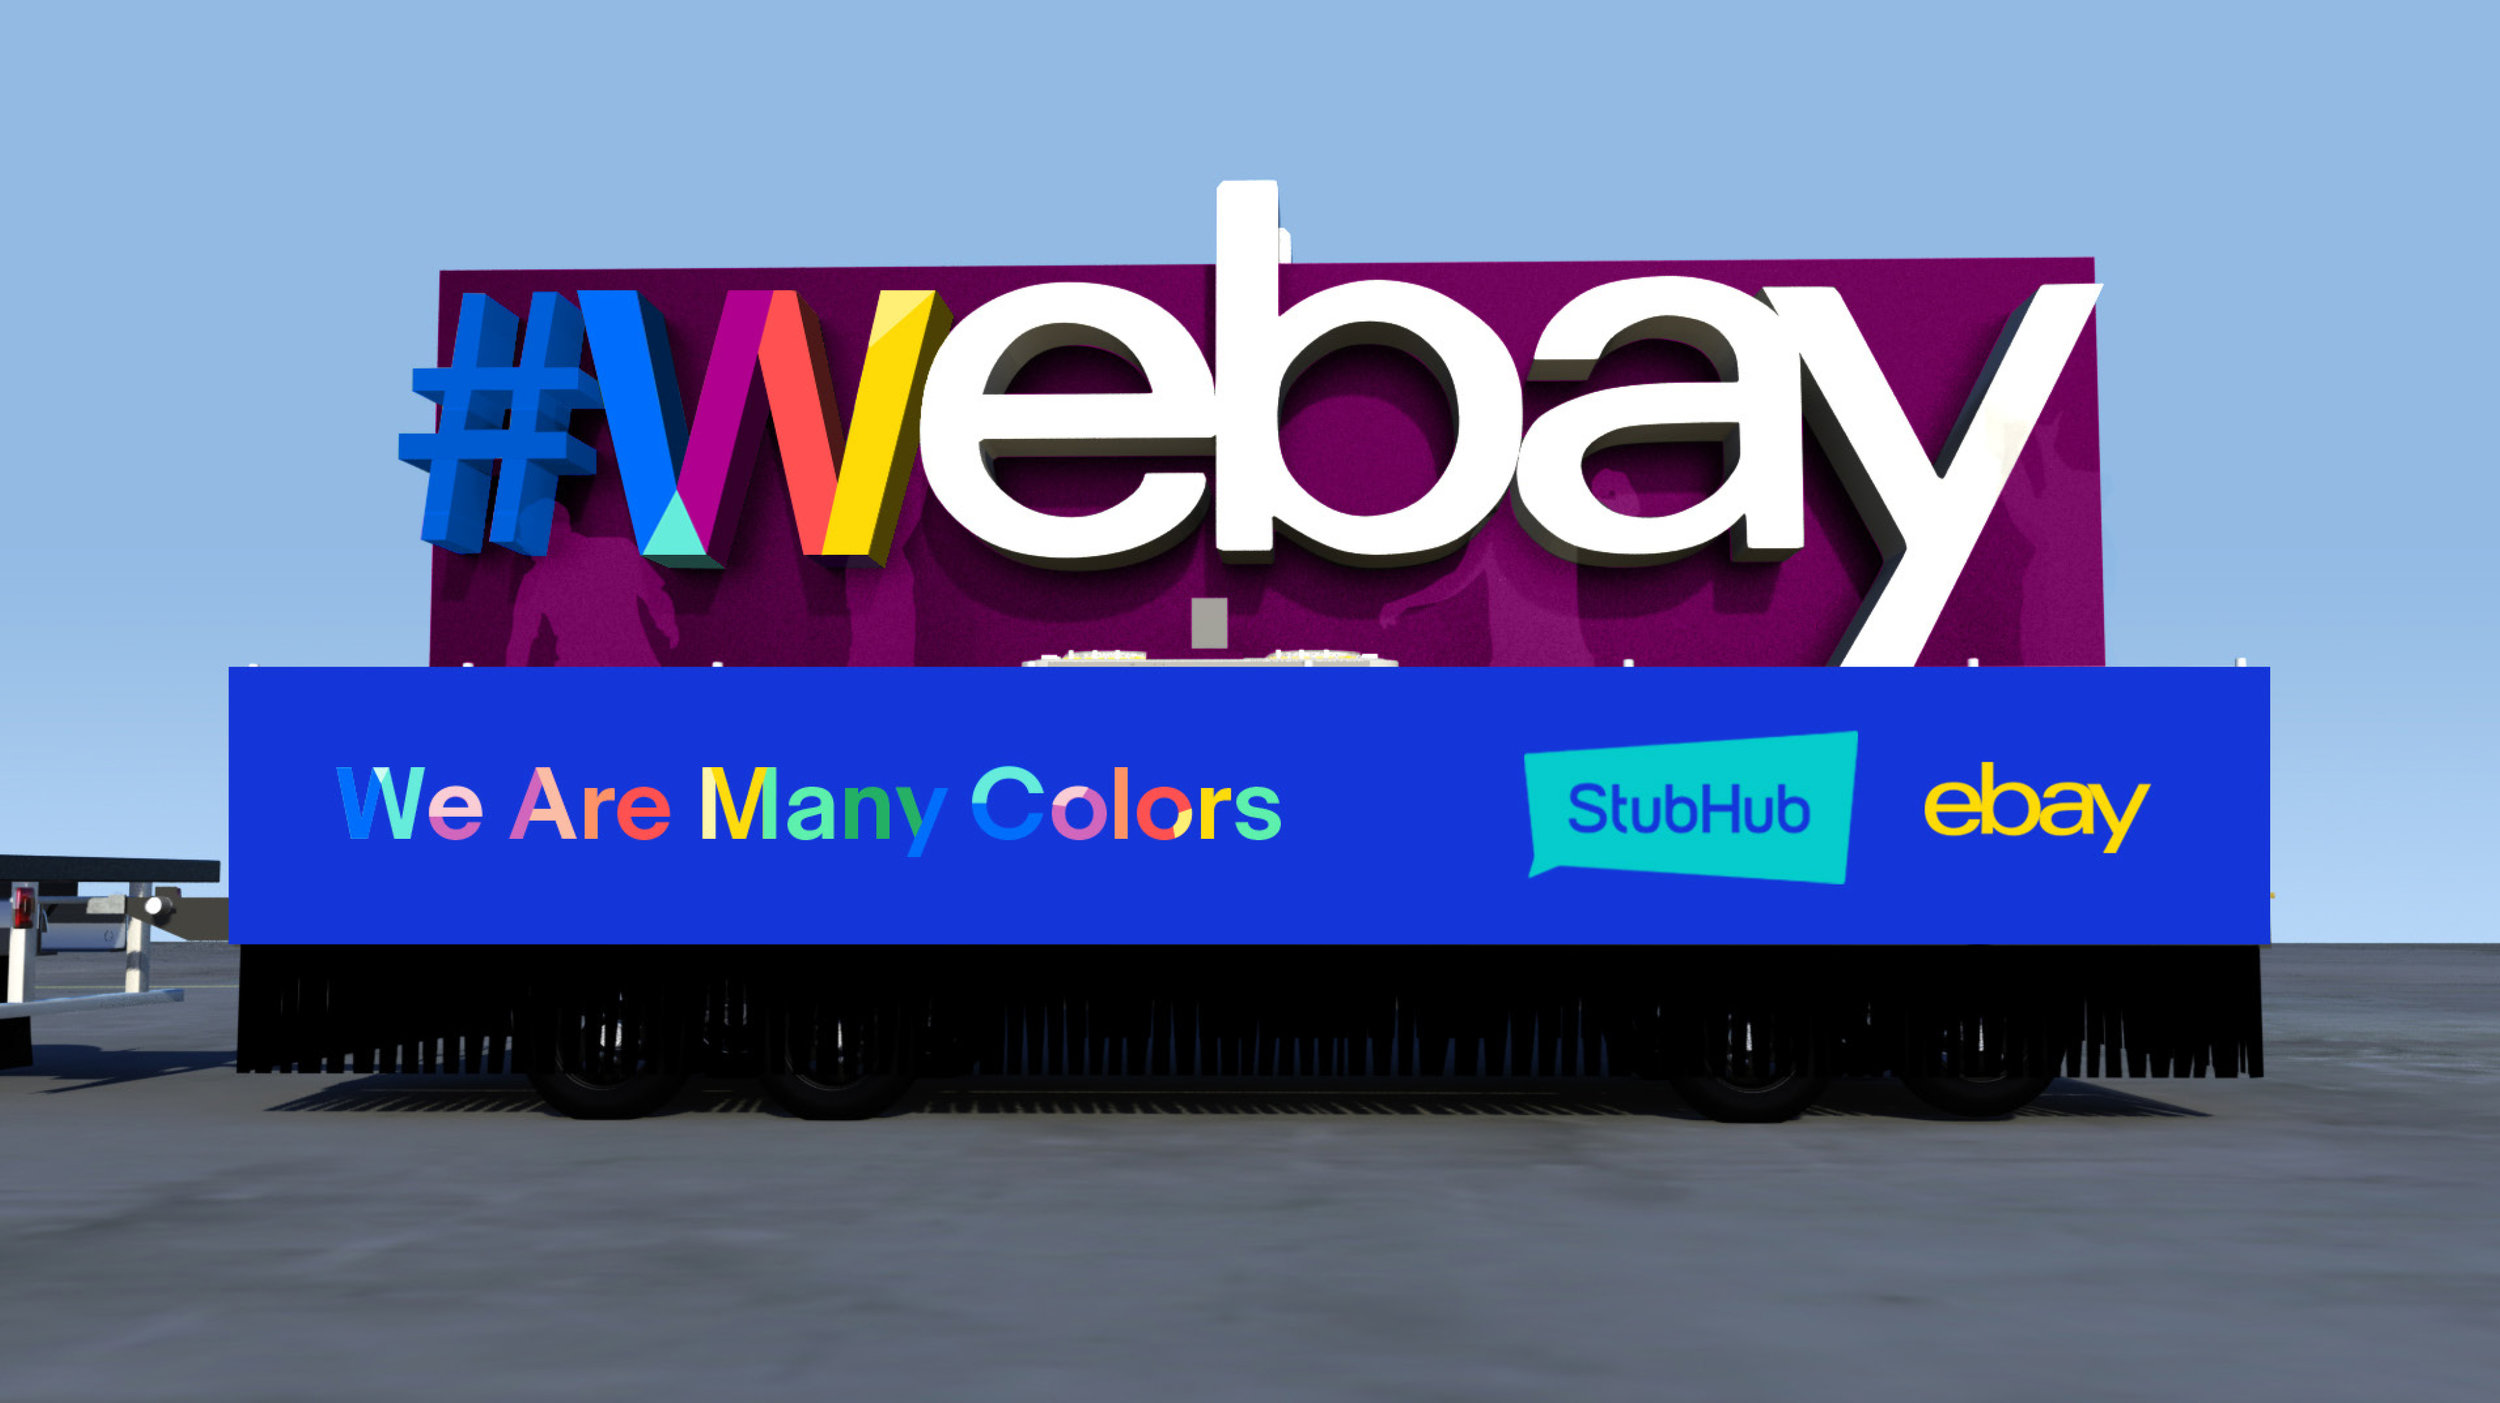 webay_Float_02.jpg